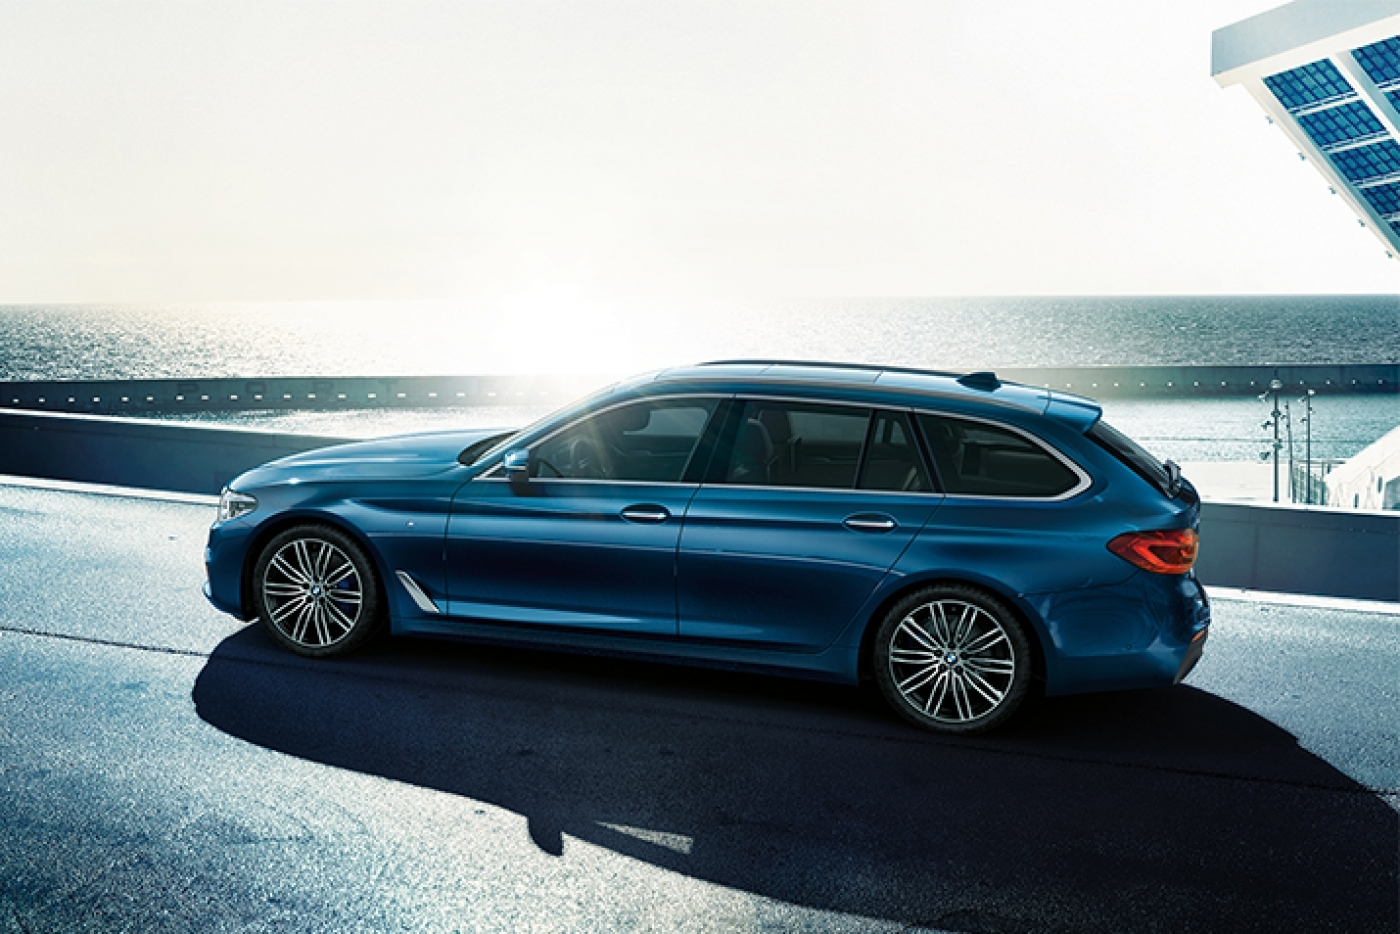 New Bmw 5 Series Touring Profile 1400 934 S C1